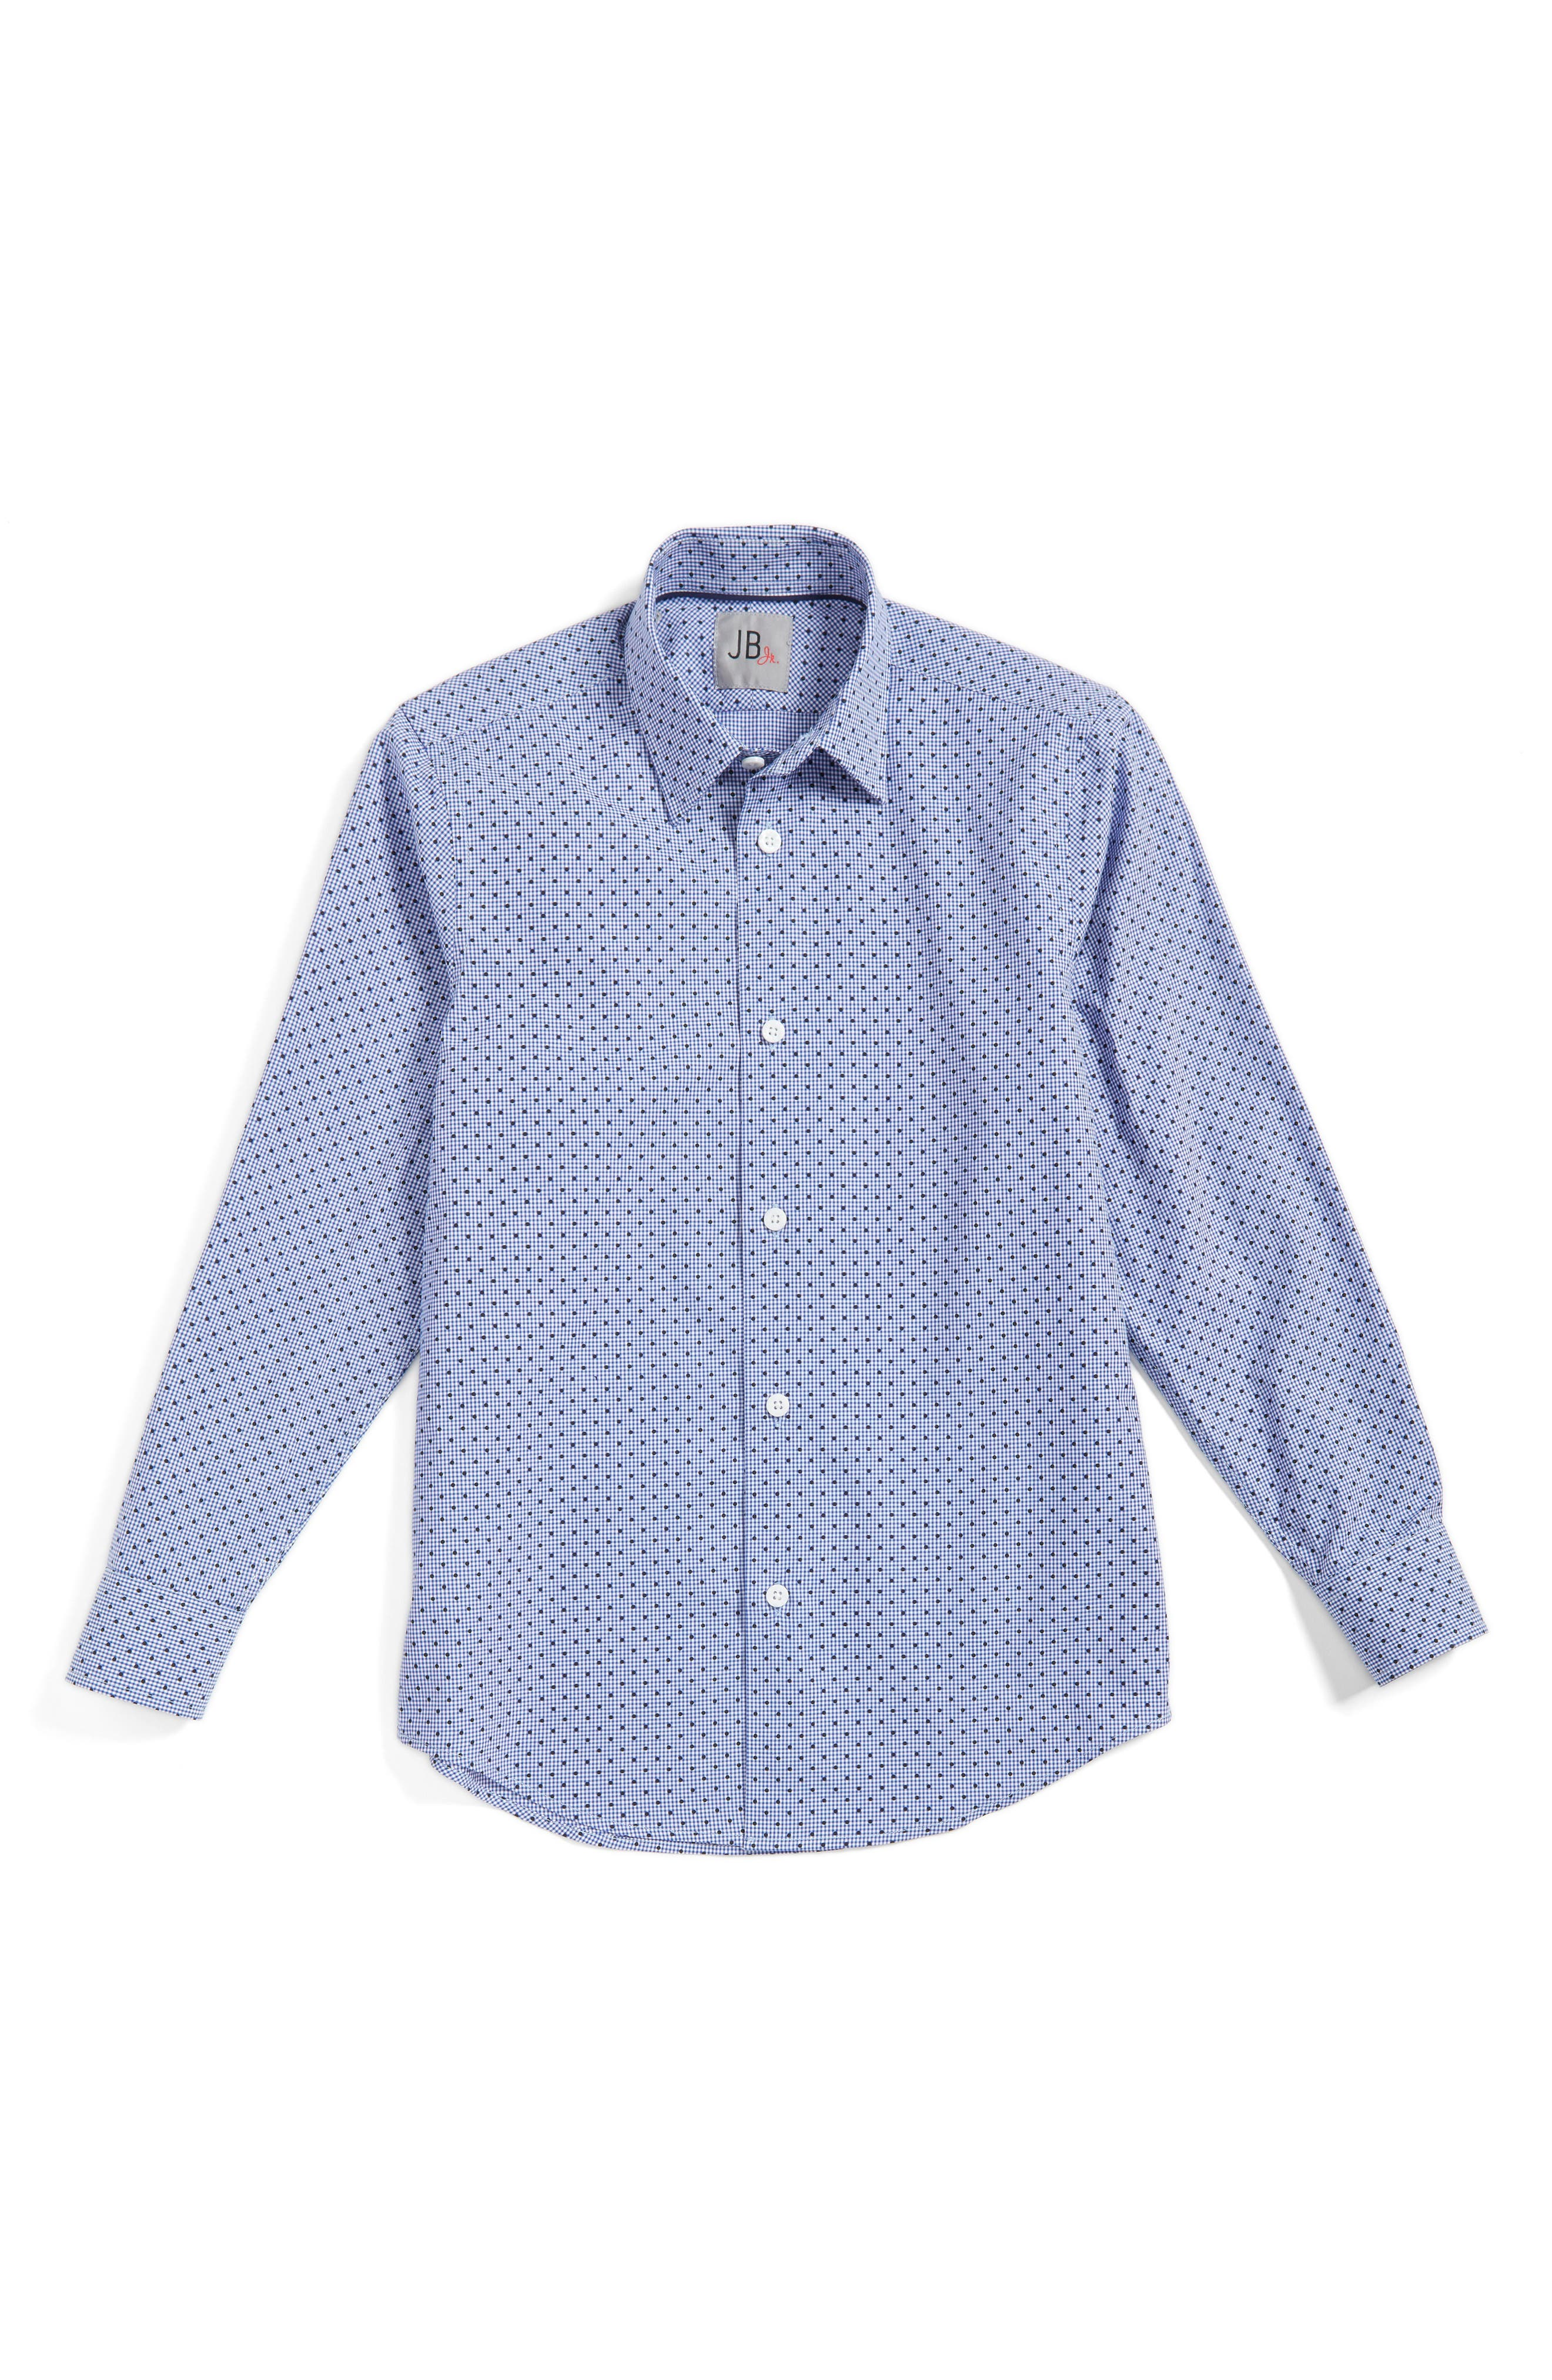 JB Jr Dot Gingham Dress Shirt (Big Boys)